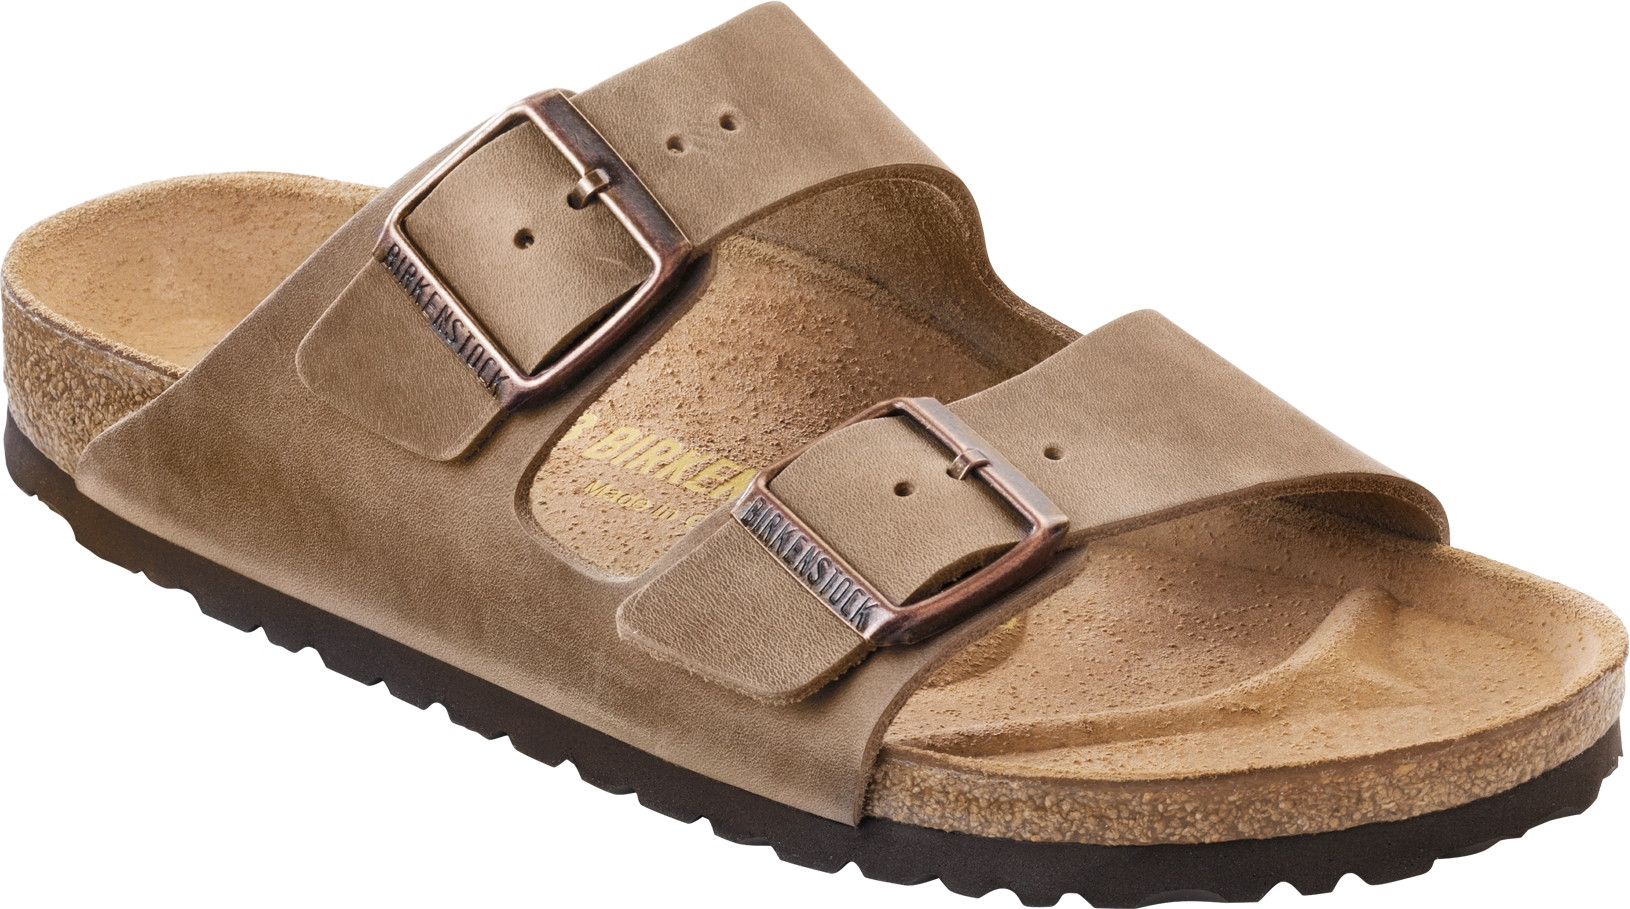 352201 Birkenstock Arizona Tabacco Brown